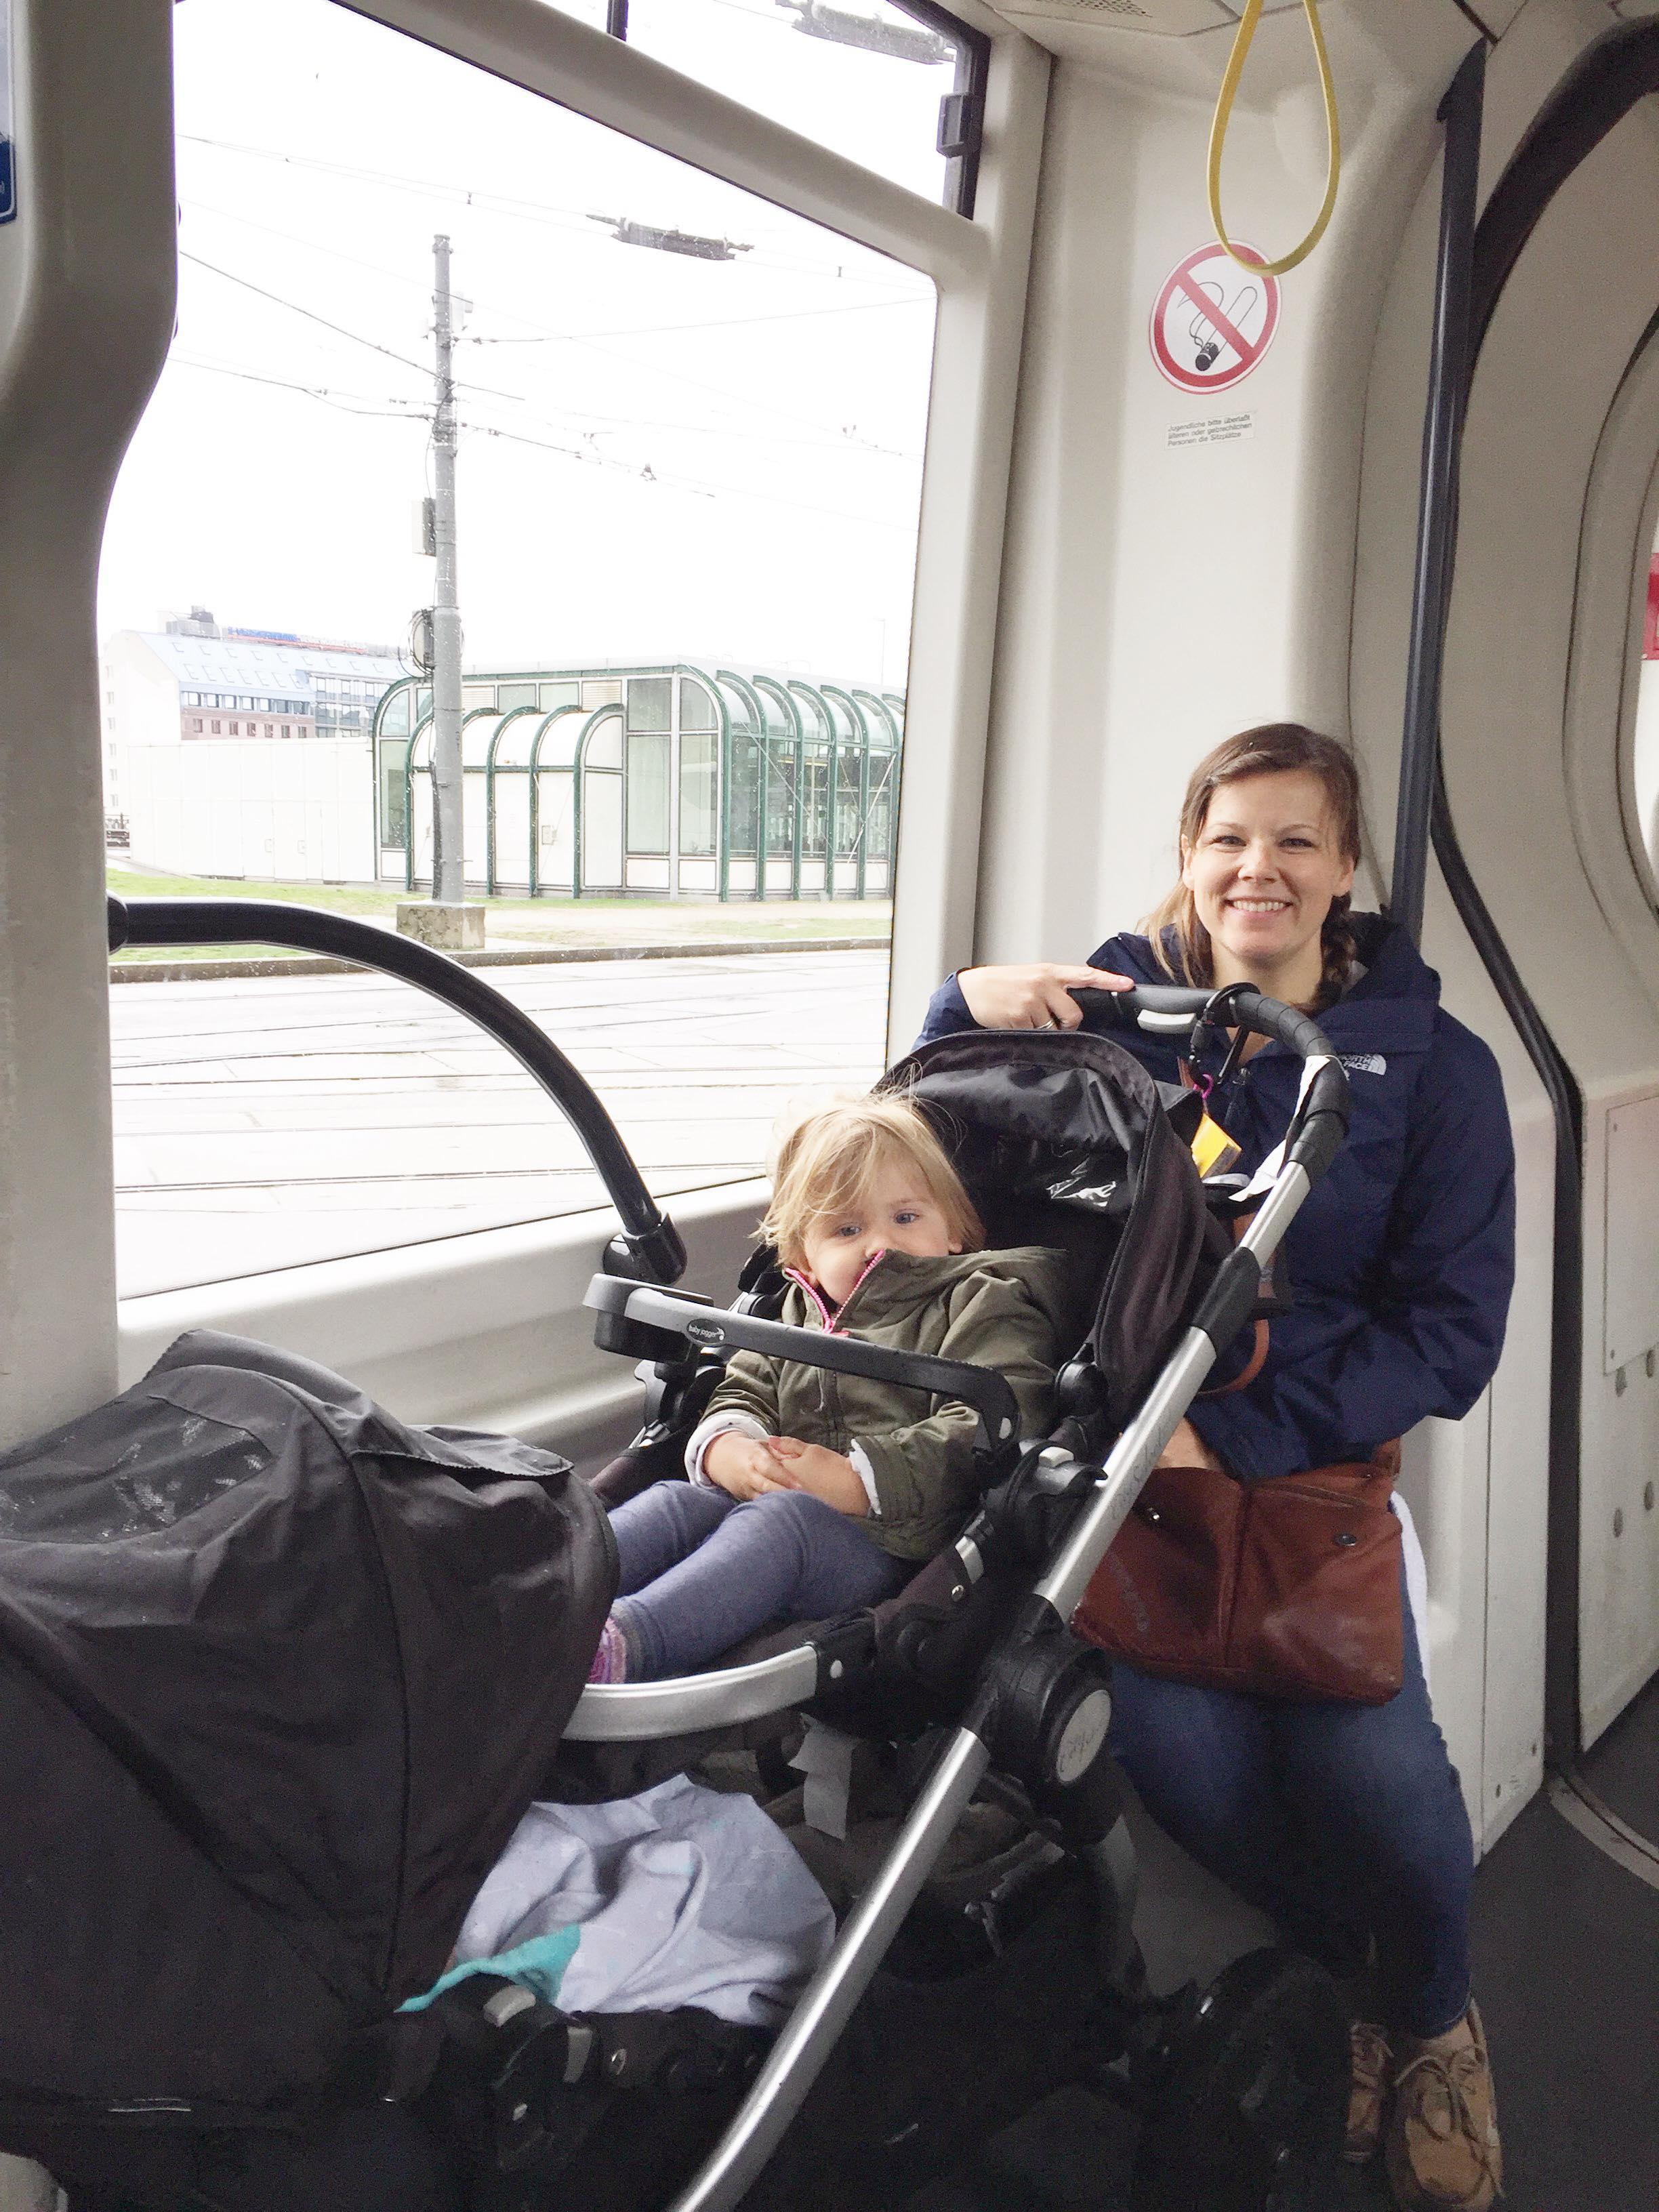 The convenient stroller seat for our tram tour